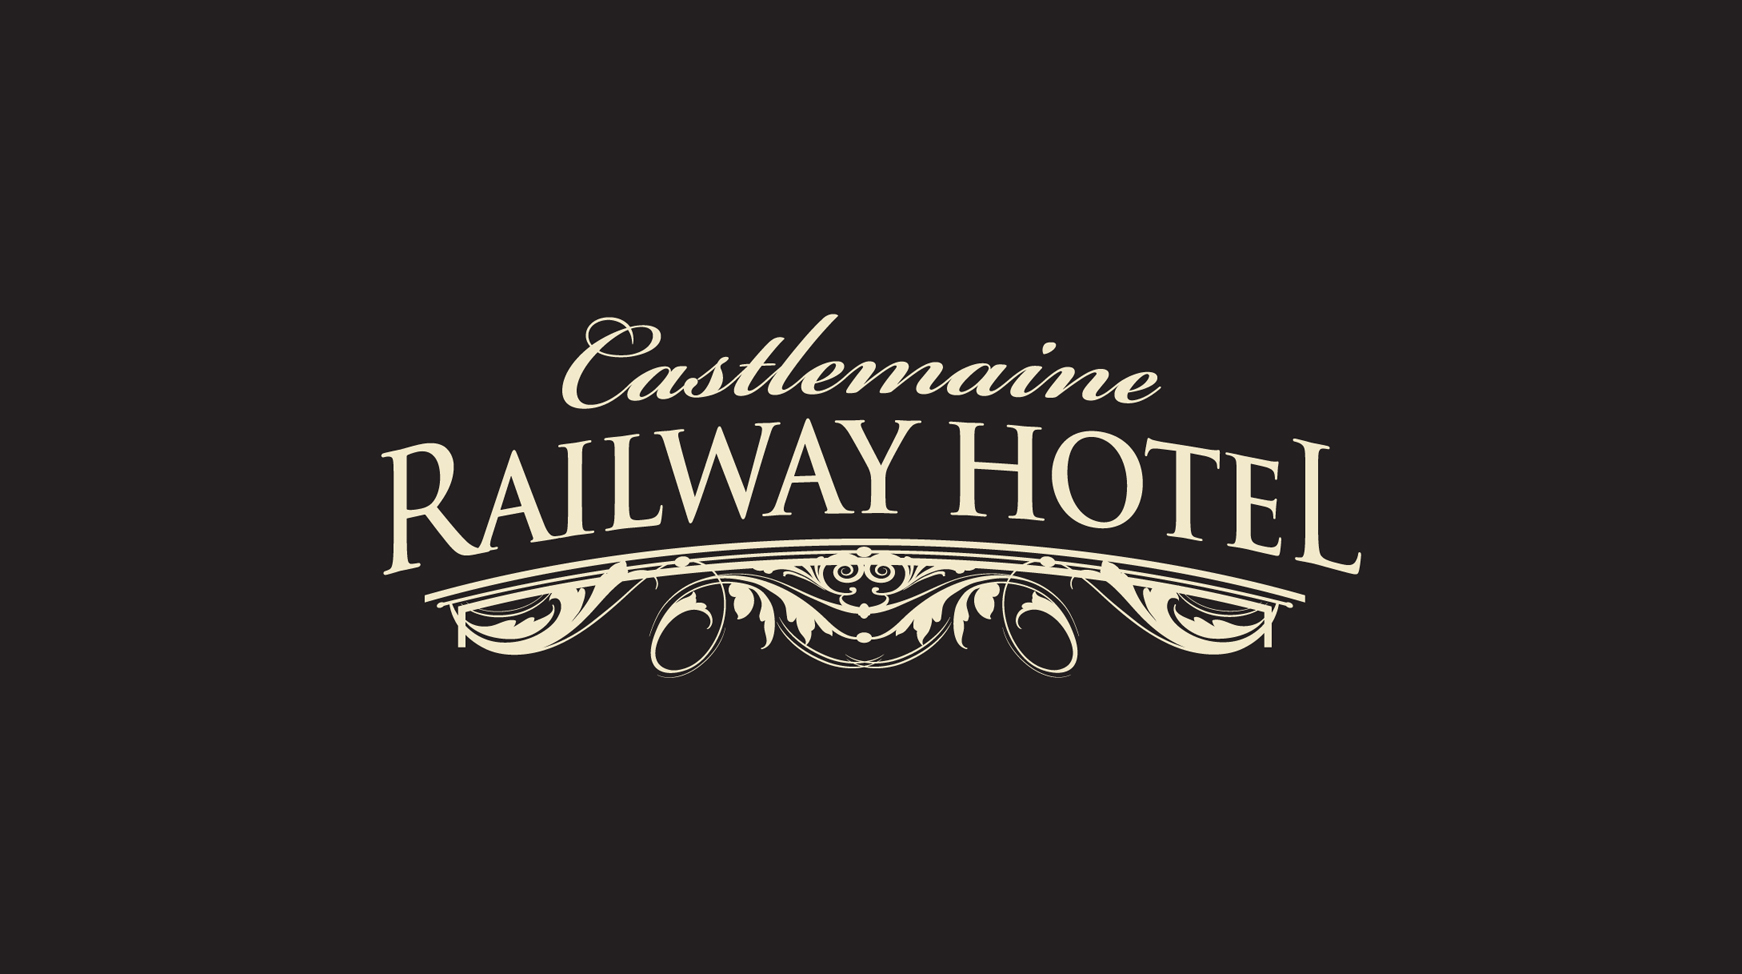 Railway Hotel Castlemaine - Broome Tourism